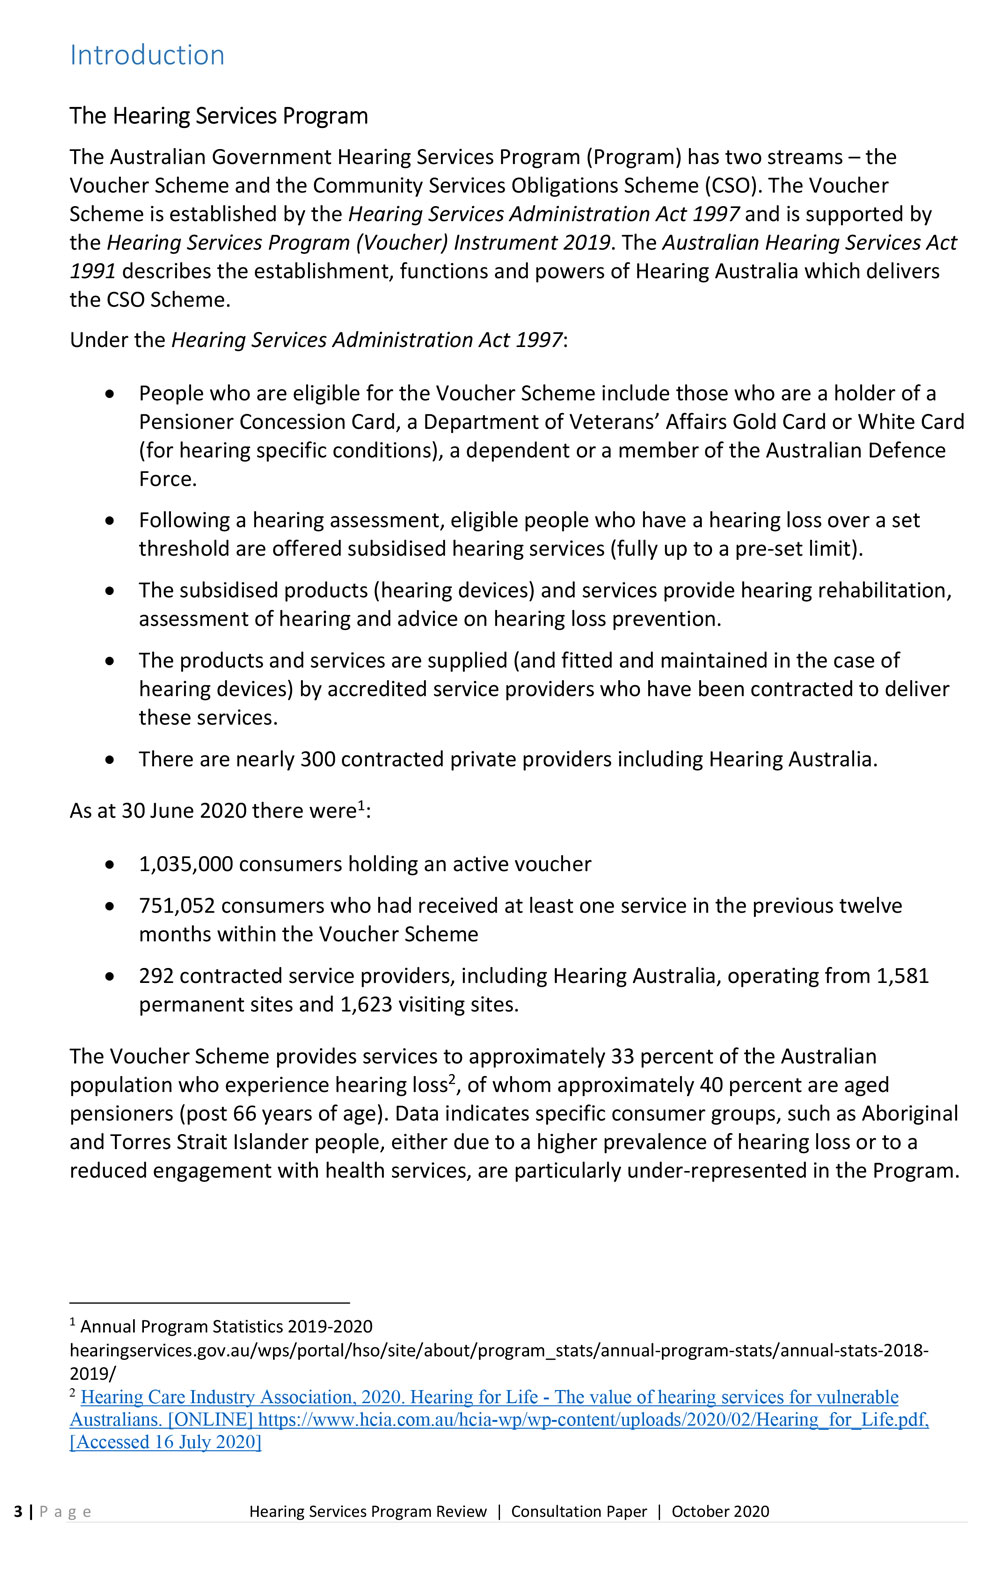 hearing-services-program-review-consultation-paper-3